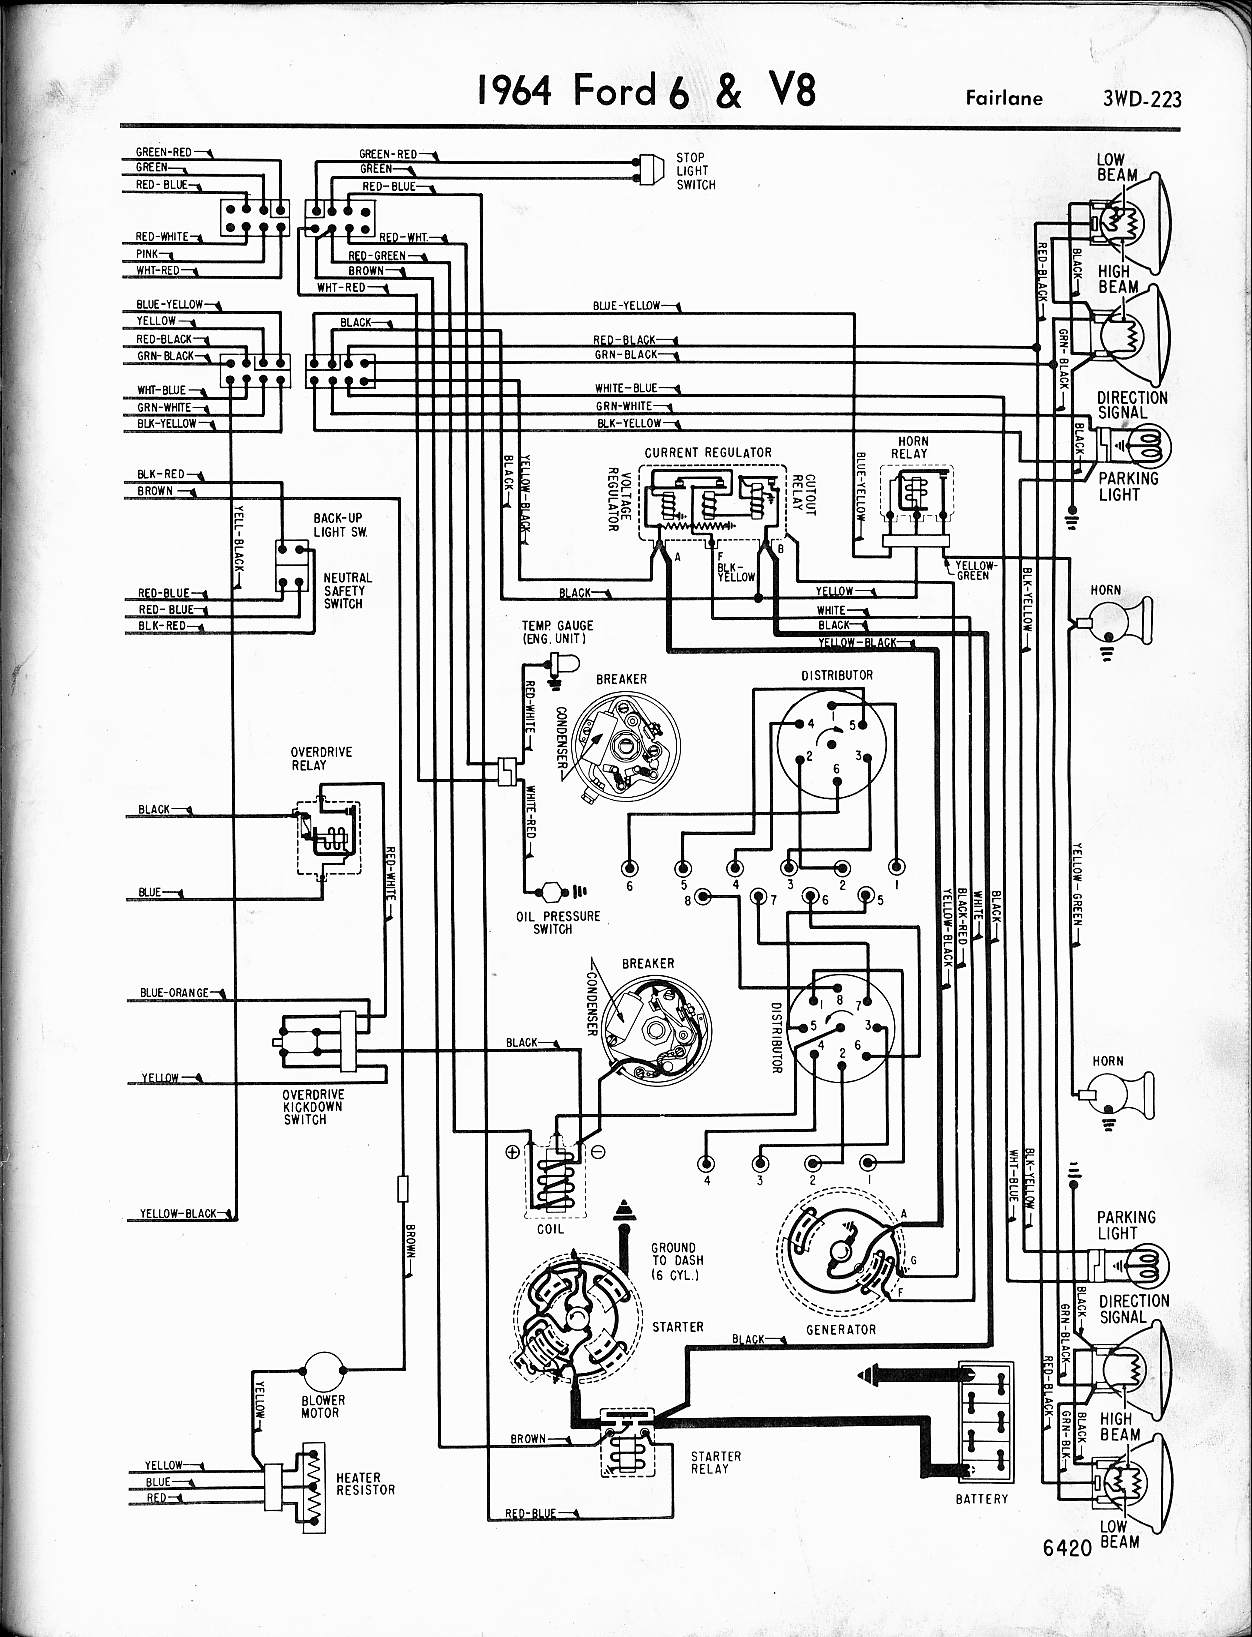 1966 ranchero wiring diagram 1966 wiring diagrams online 1964 ranchero wiring diagram 1964 auto wiring diagram schematic